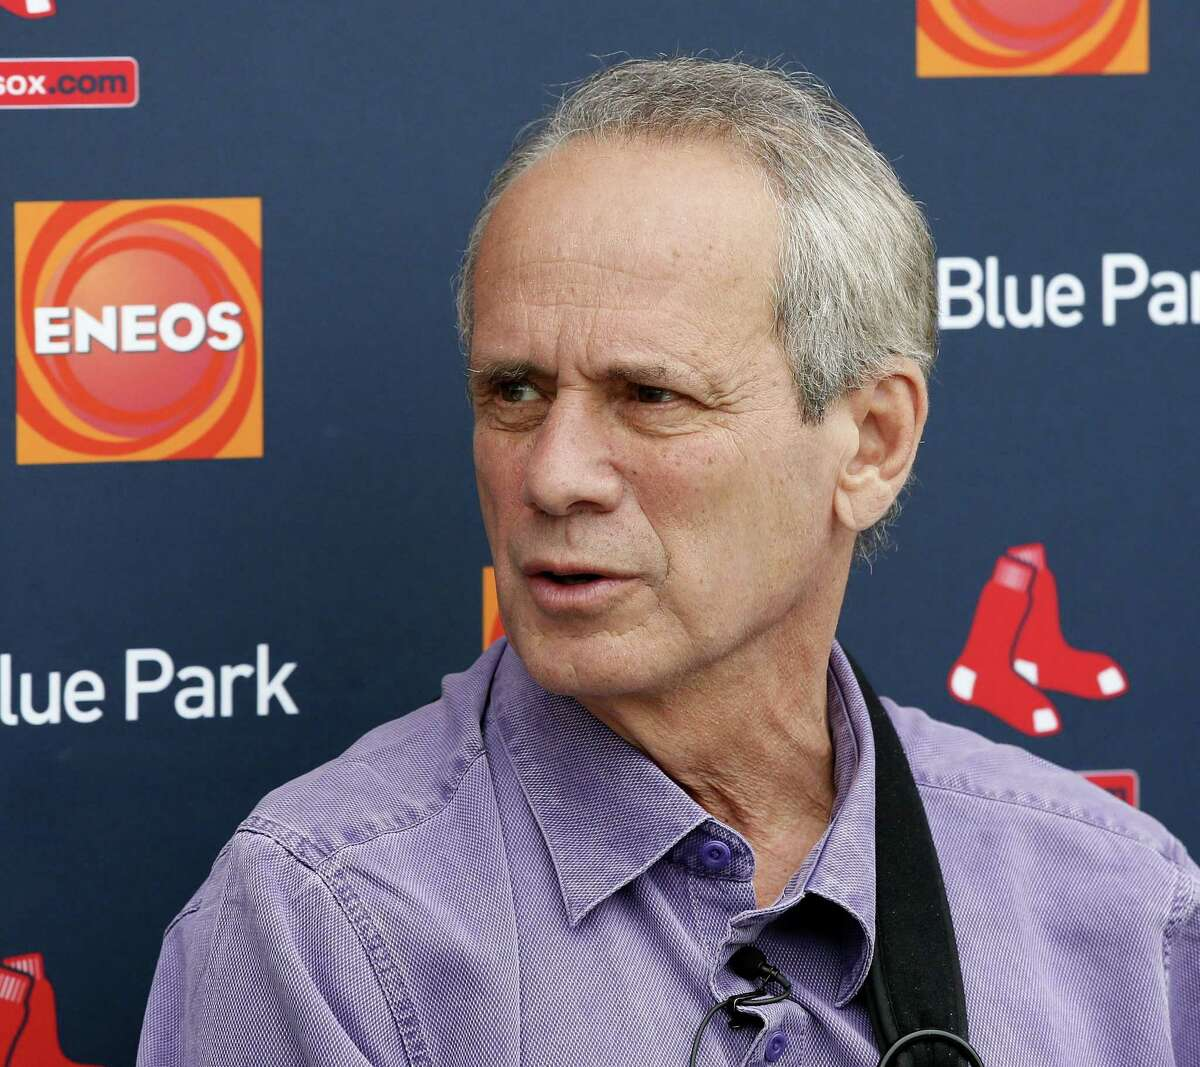 File- This Feb. 25, 2015, file photo shows Boston Red Sox President and Chief Executive Officer Larry Lucchino, responding to questions during a news conference in Fort Myers Fla. Lucchino is stepping down this year. Team spokesman Kevin Gregg says in an email that Lucchino hopes to remain with the club in some capacity. Gregg also says Sam Kennedy, the executive vice president and COO of the Red Sox, is Lucchinoís choice to take over as president.(AP Photo/Tony Gutierrez, File)